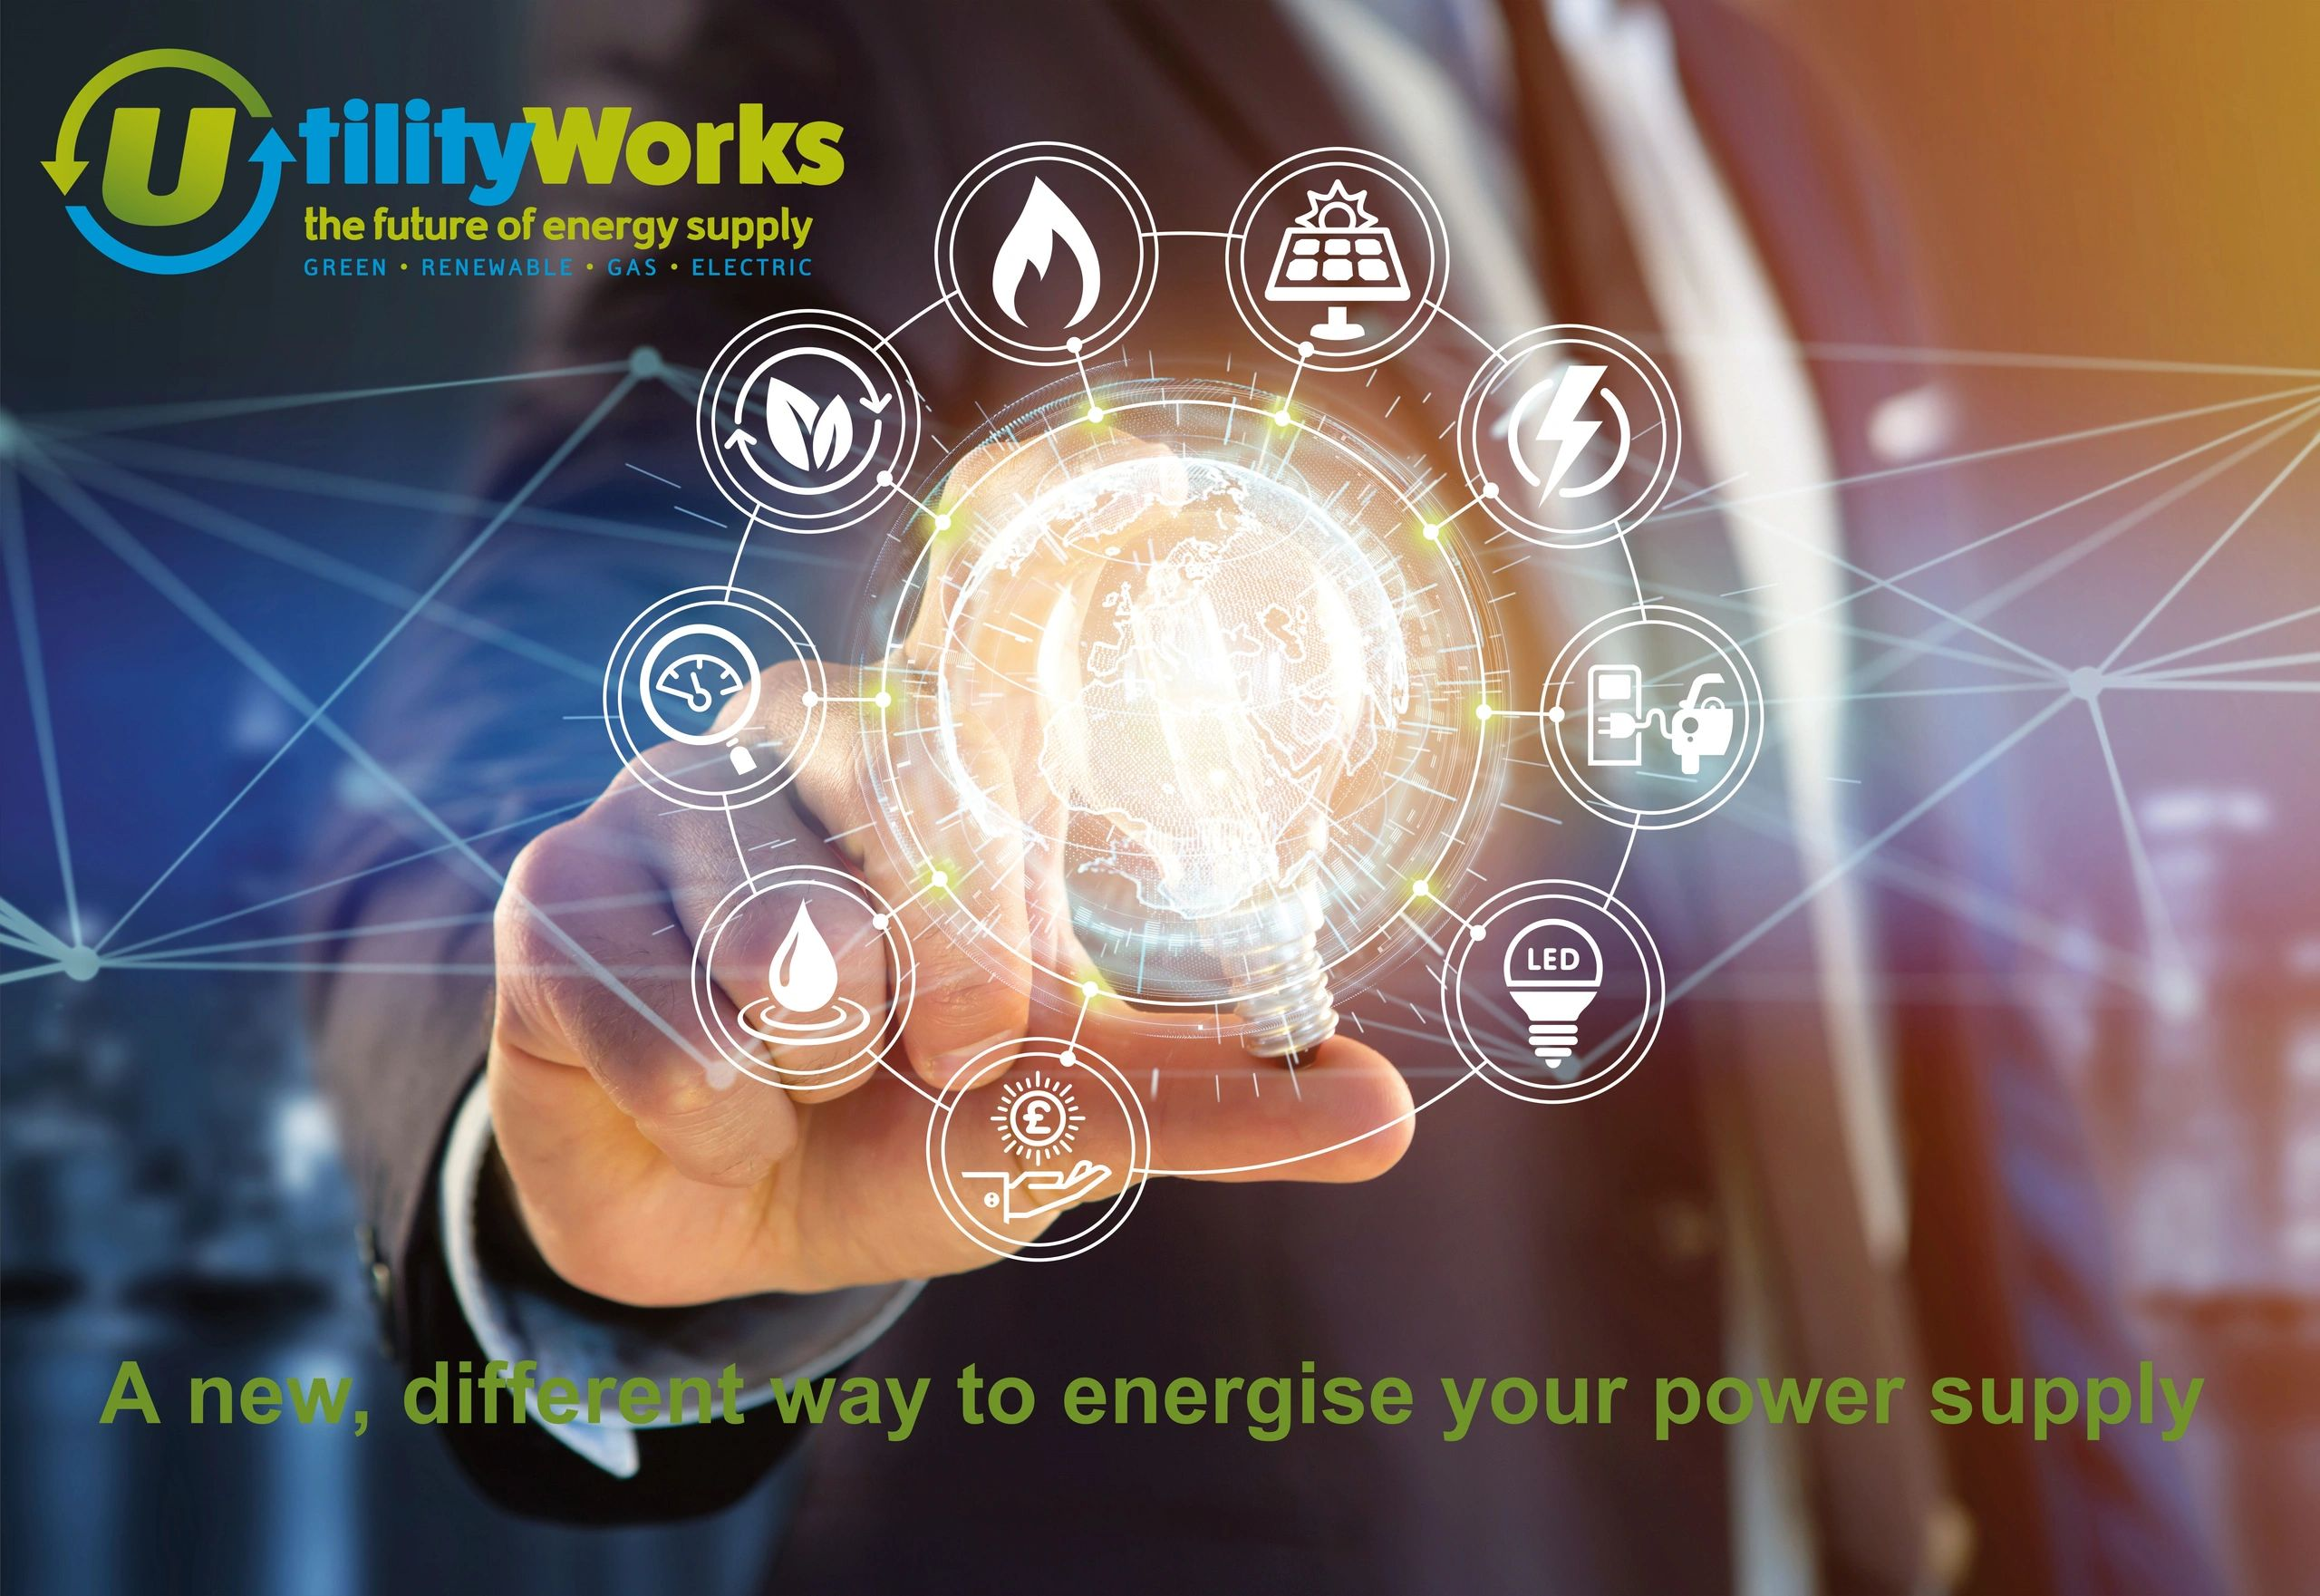 Utility Works aim is to reduce business energy costs and carbon emissions for business consumers.